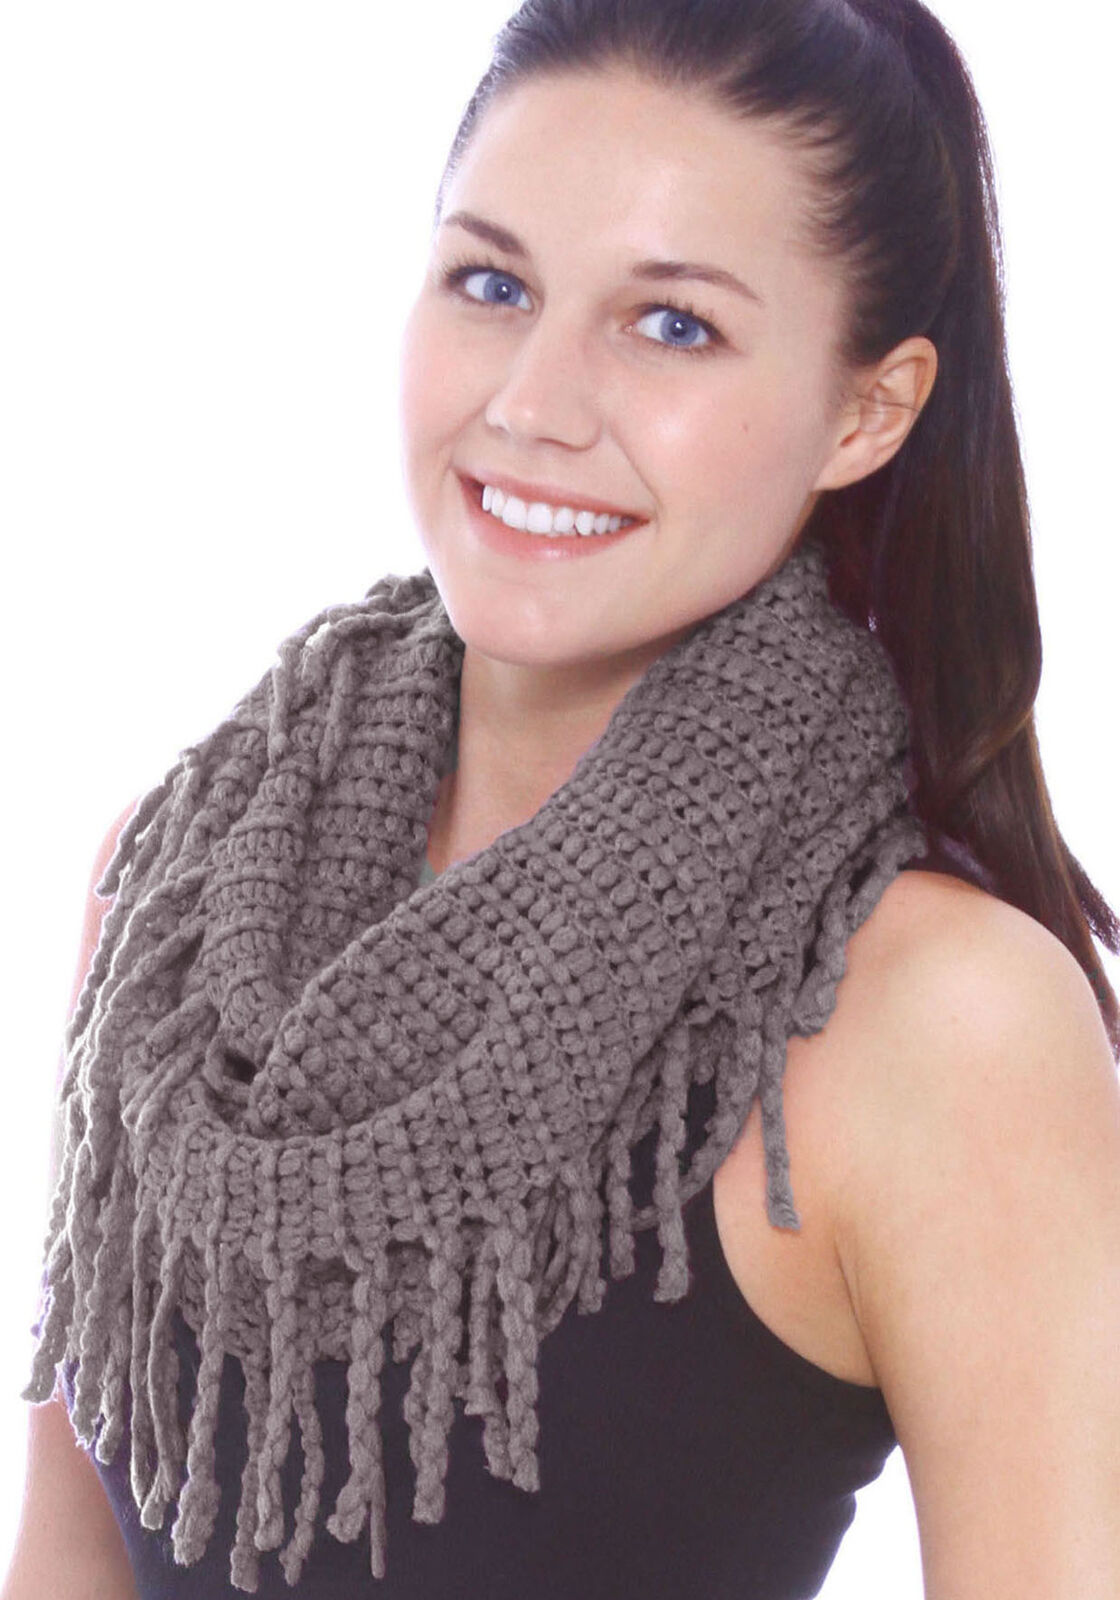 Women Solid Knitted Warm Winter Fringe Infinity Scarf Knit C